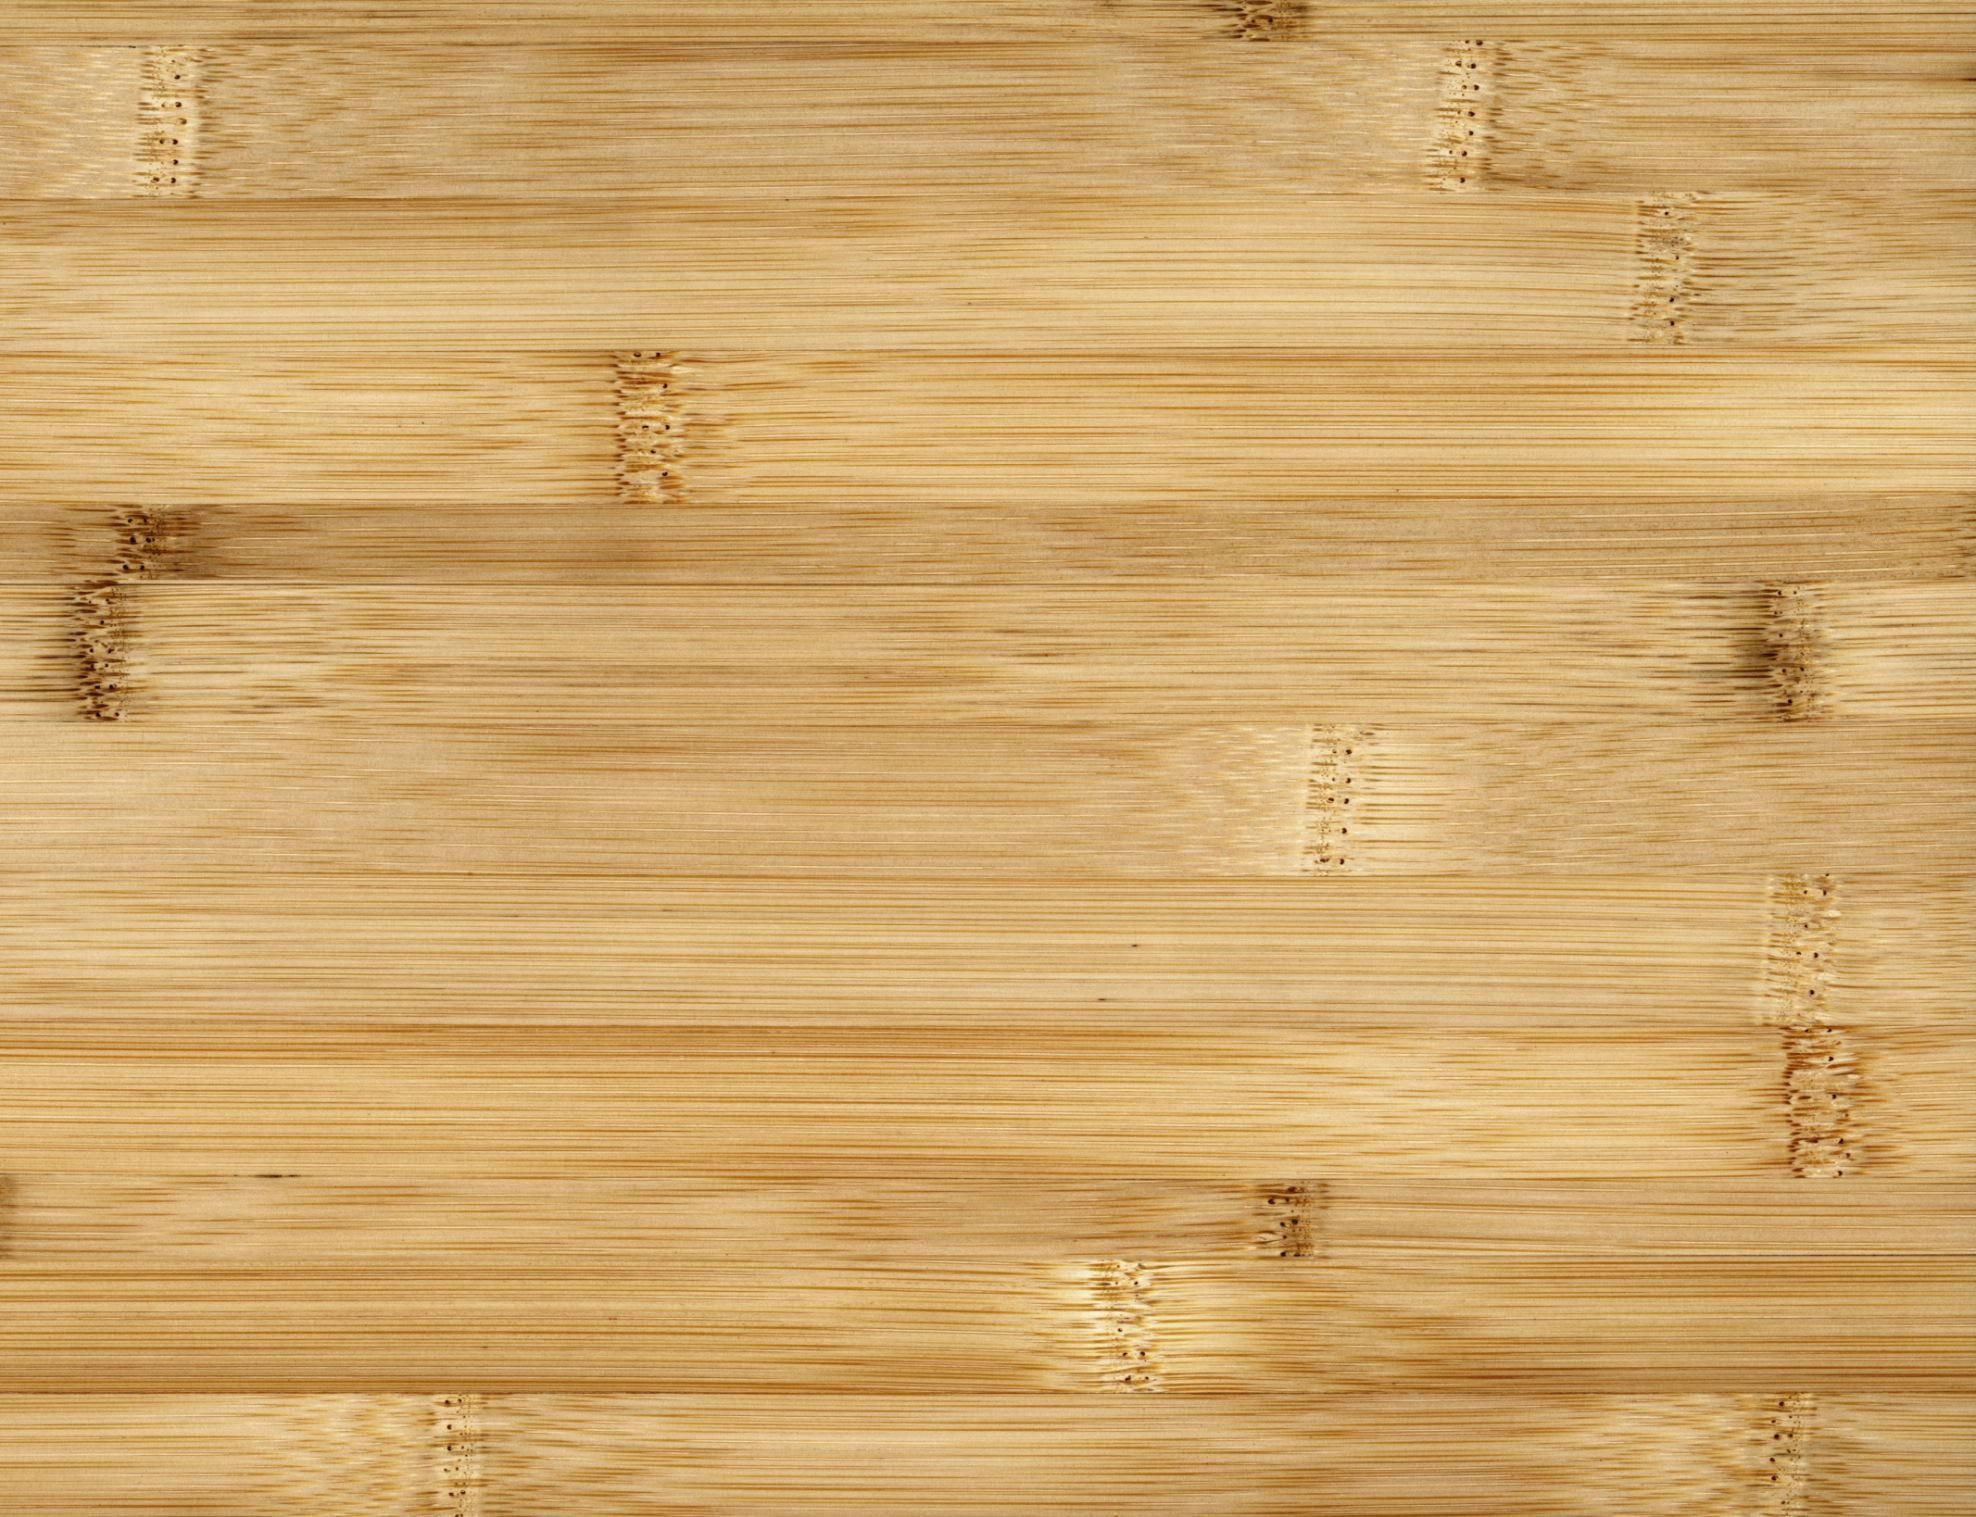 how to make hardwood floors shine of how to clean bamboo flooring inside 200266305 001 56a2fd815f9b58b7d0d000cd